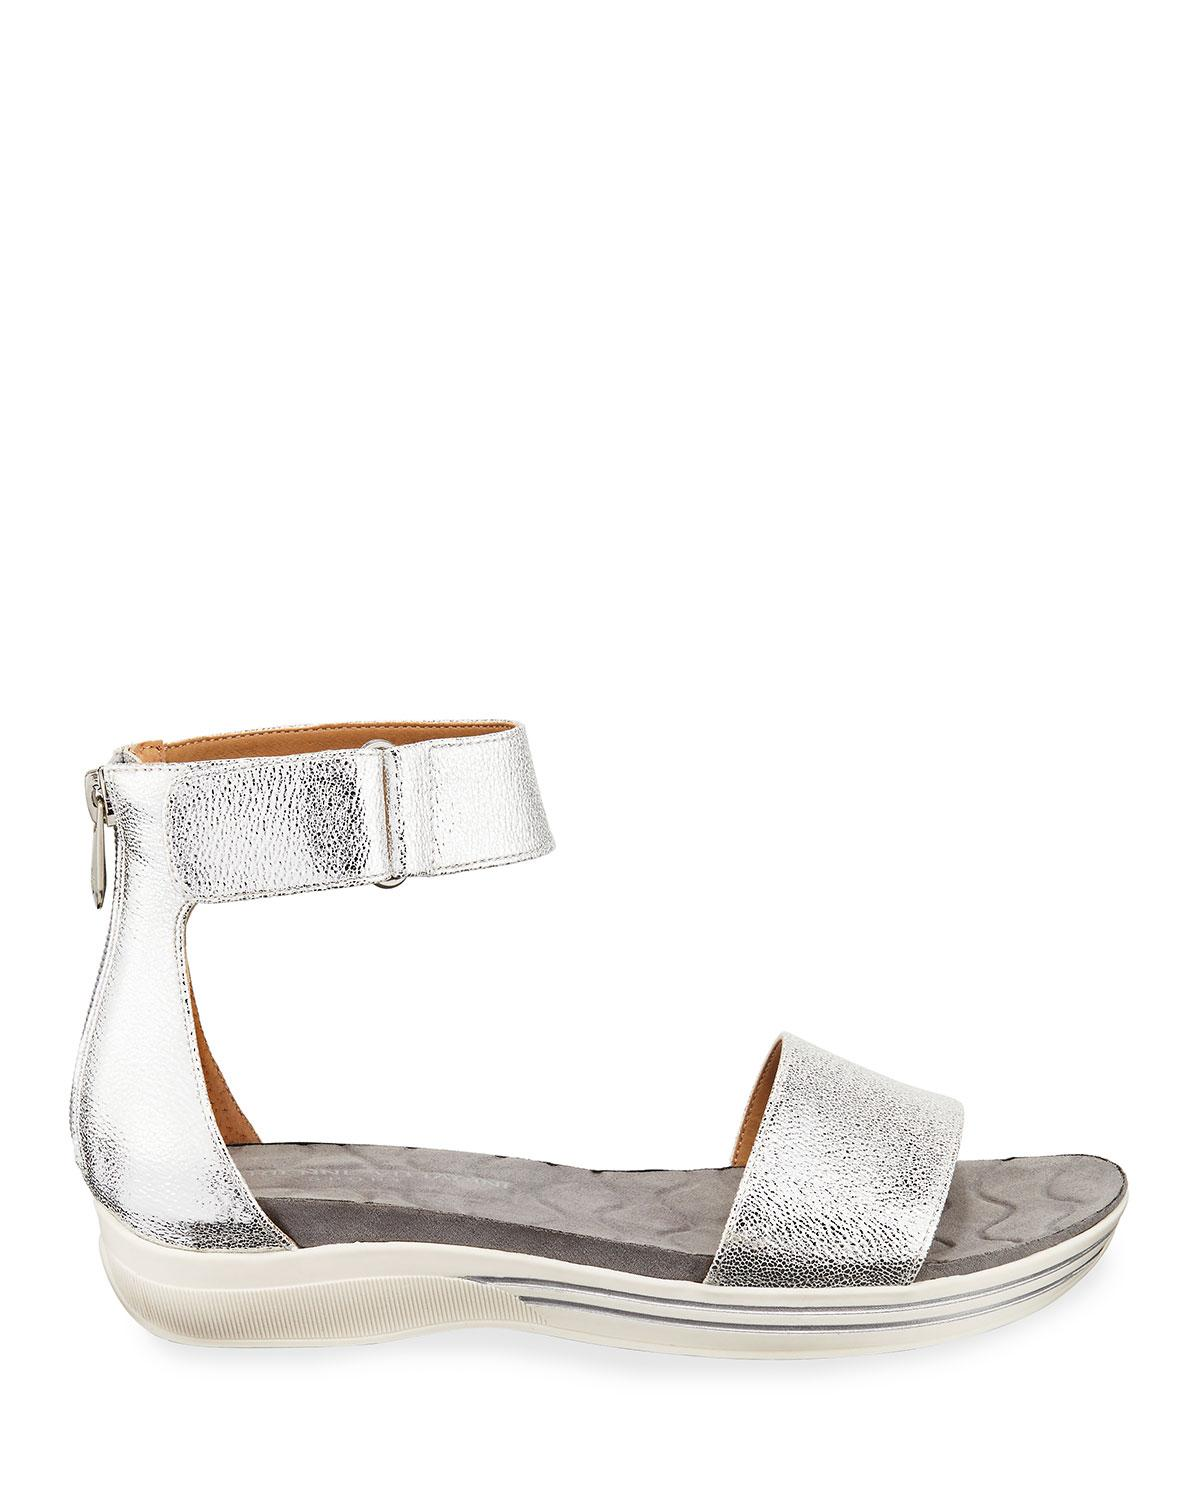 3bef84c36f5d Lyst - Adrienne Vittadini Carlos Metallic Ankle-strap Sandals in ...